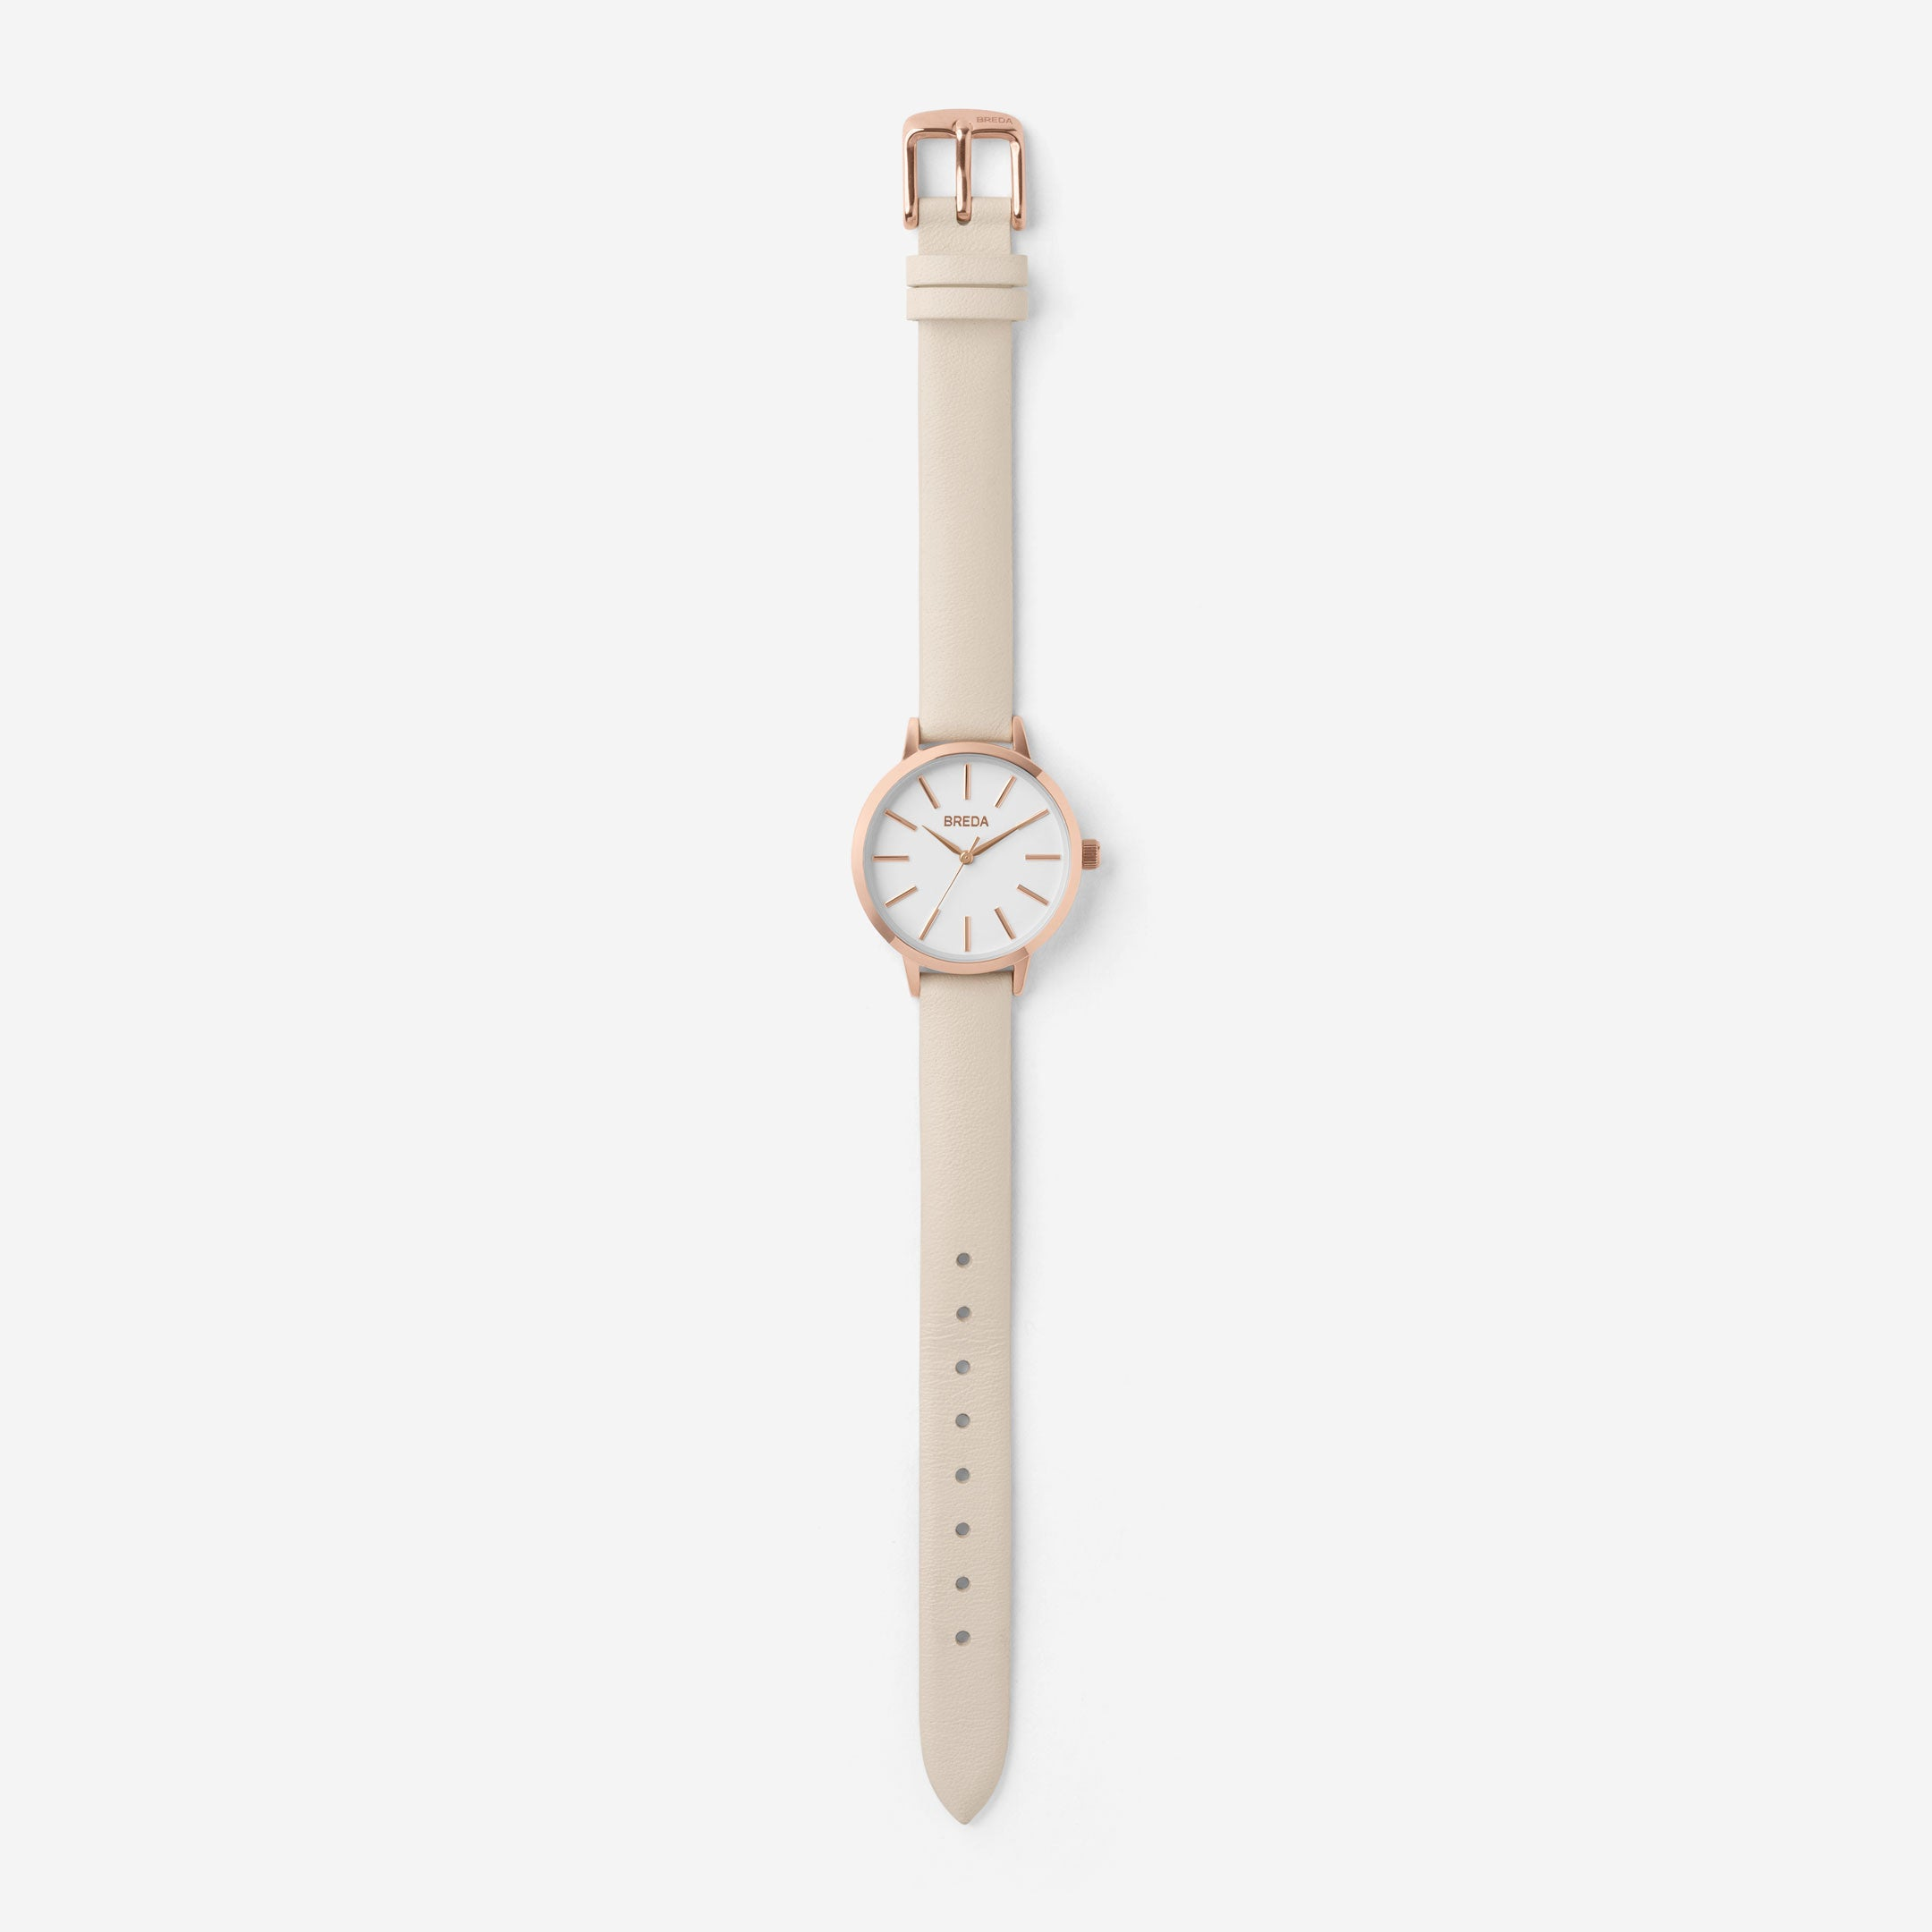 //cdn.shopify.com/s/files/1/0879/6650/products/breda-petite-joule-1734c-rose-gold-cream-watch-long_1024x1024.jpg?v=1530901981